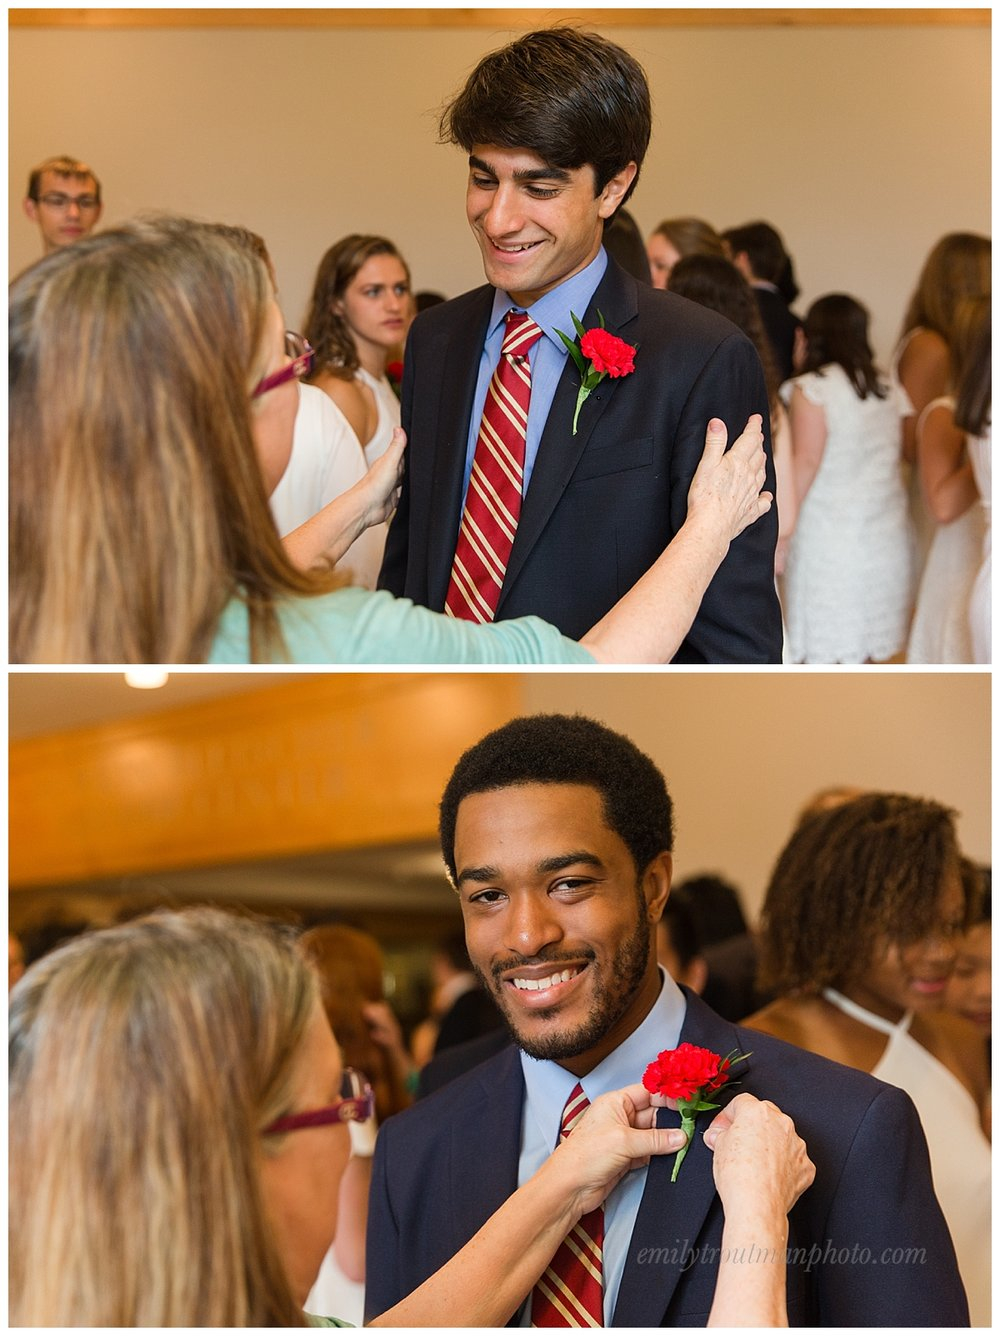 The tradition of pinning a red carnation on the gentlemen has been a long standing one!